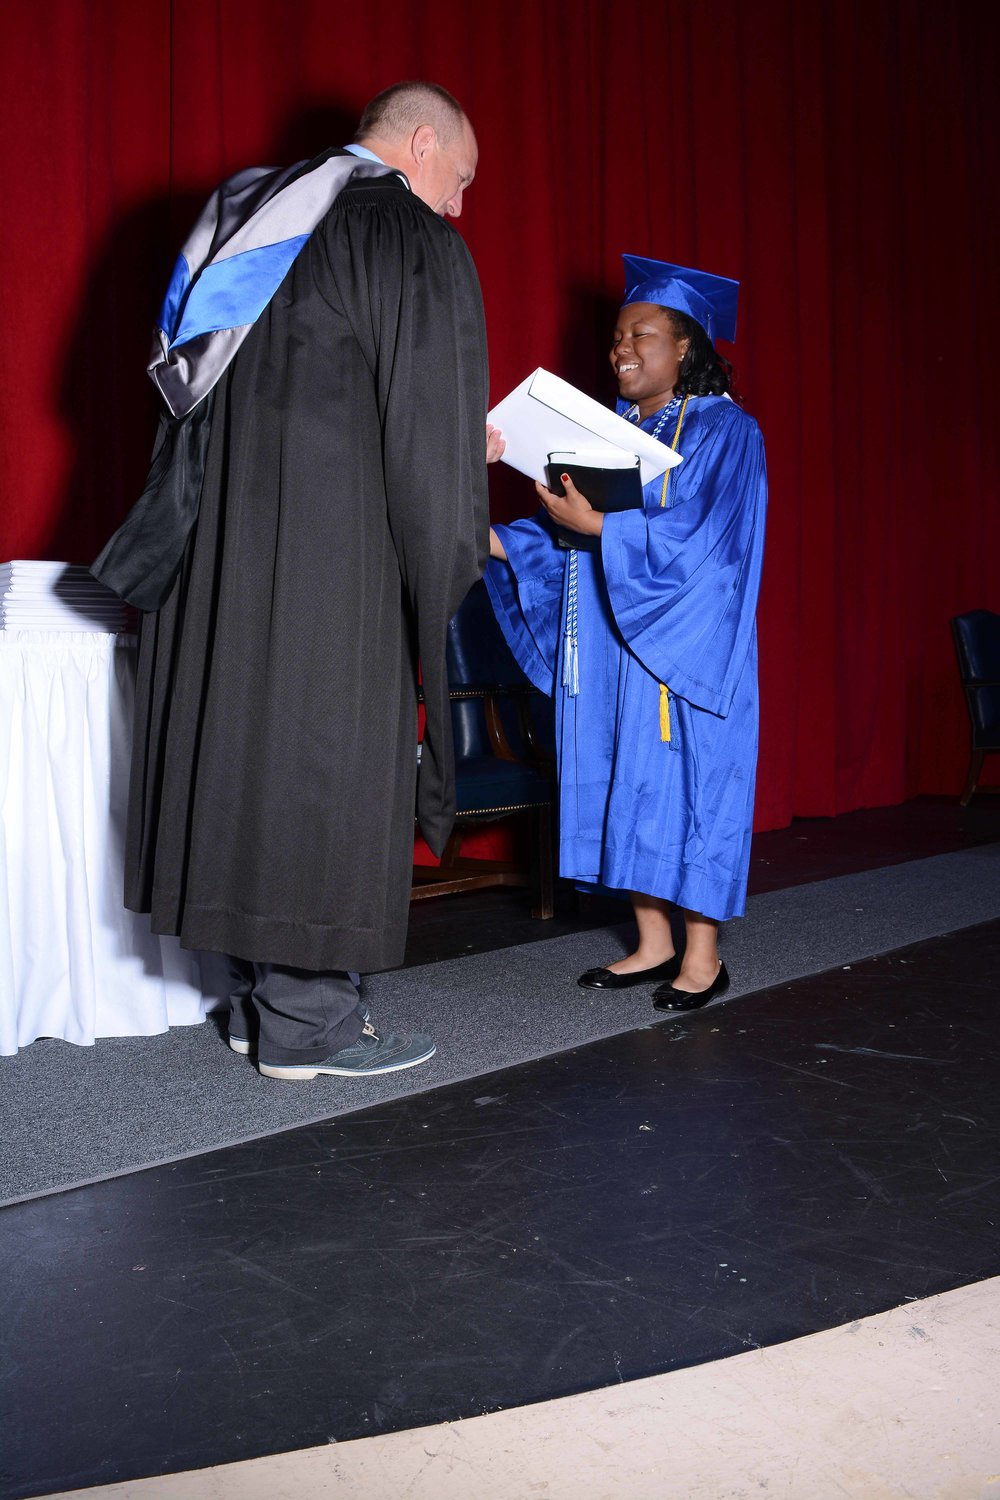 May14 Commencement22.jpg